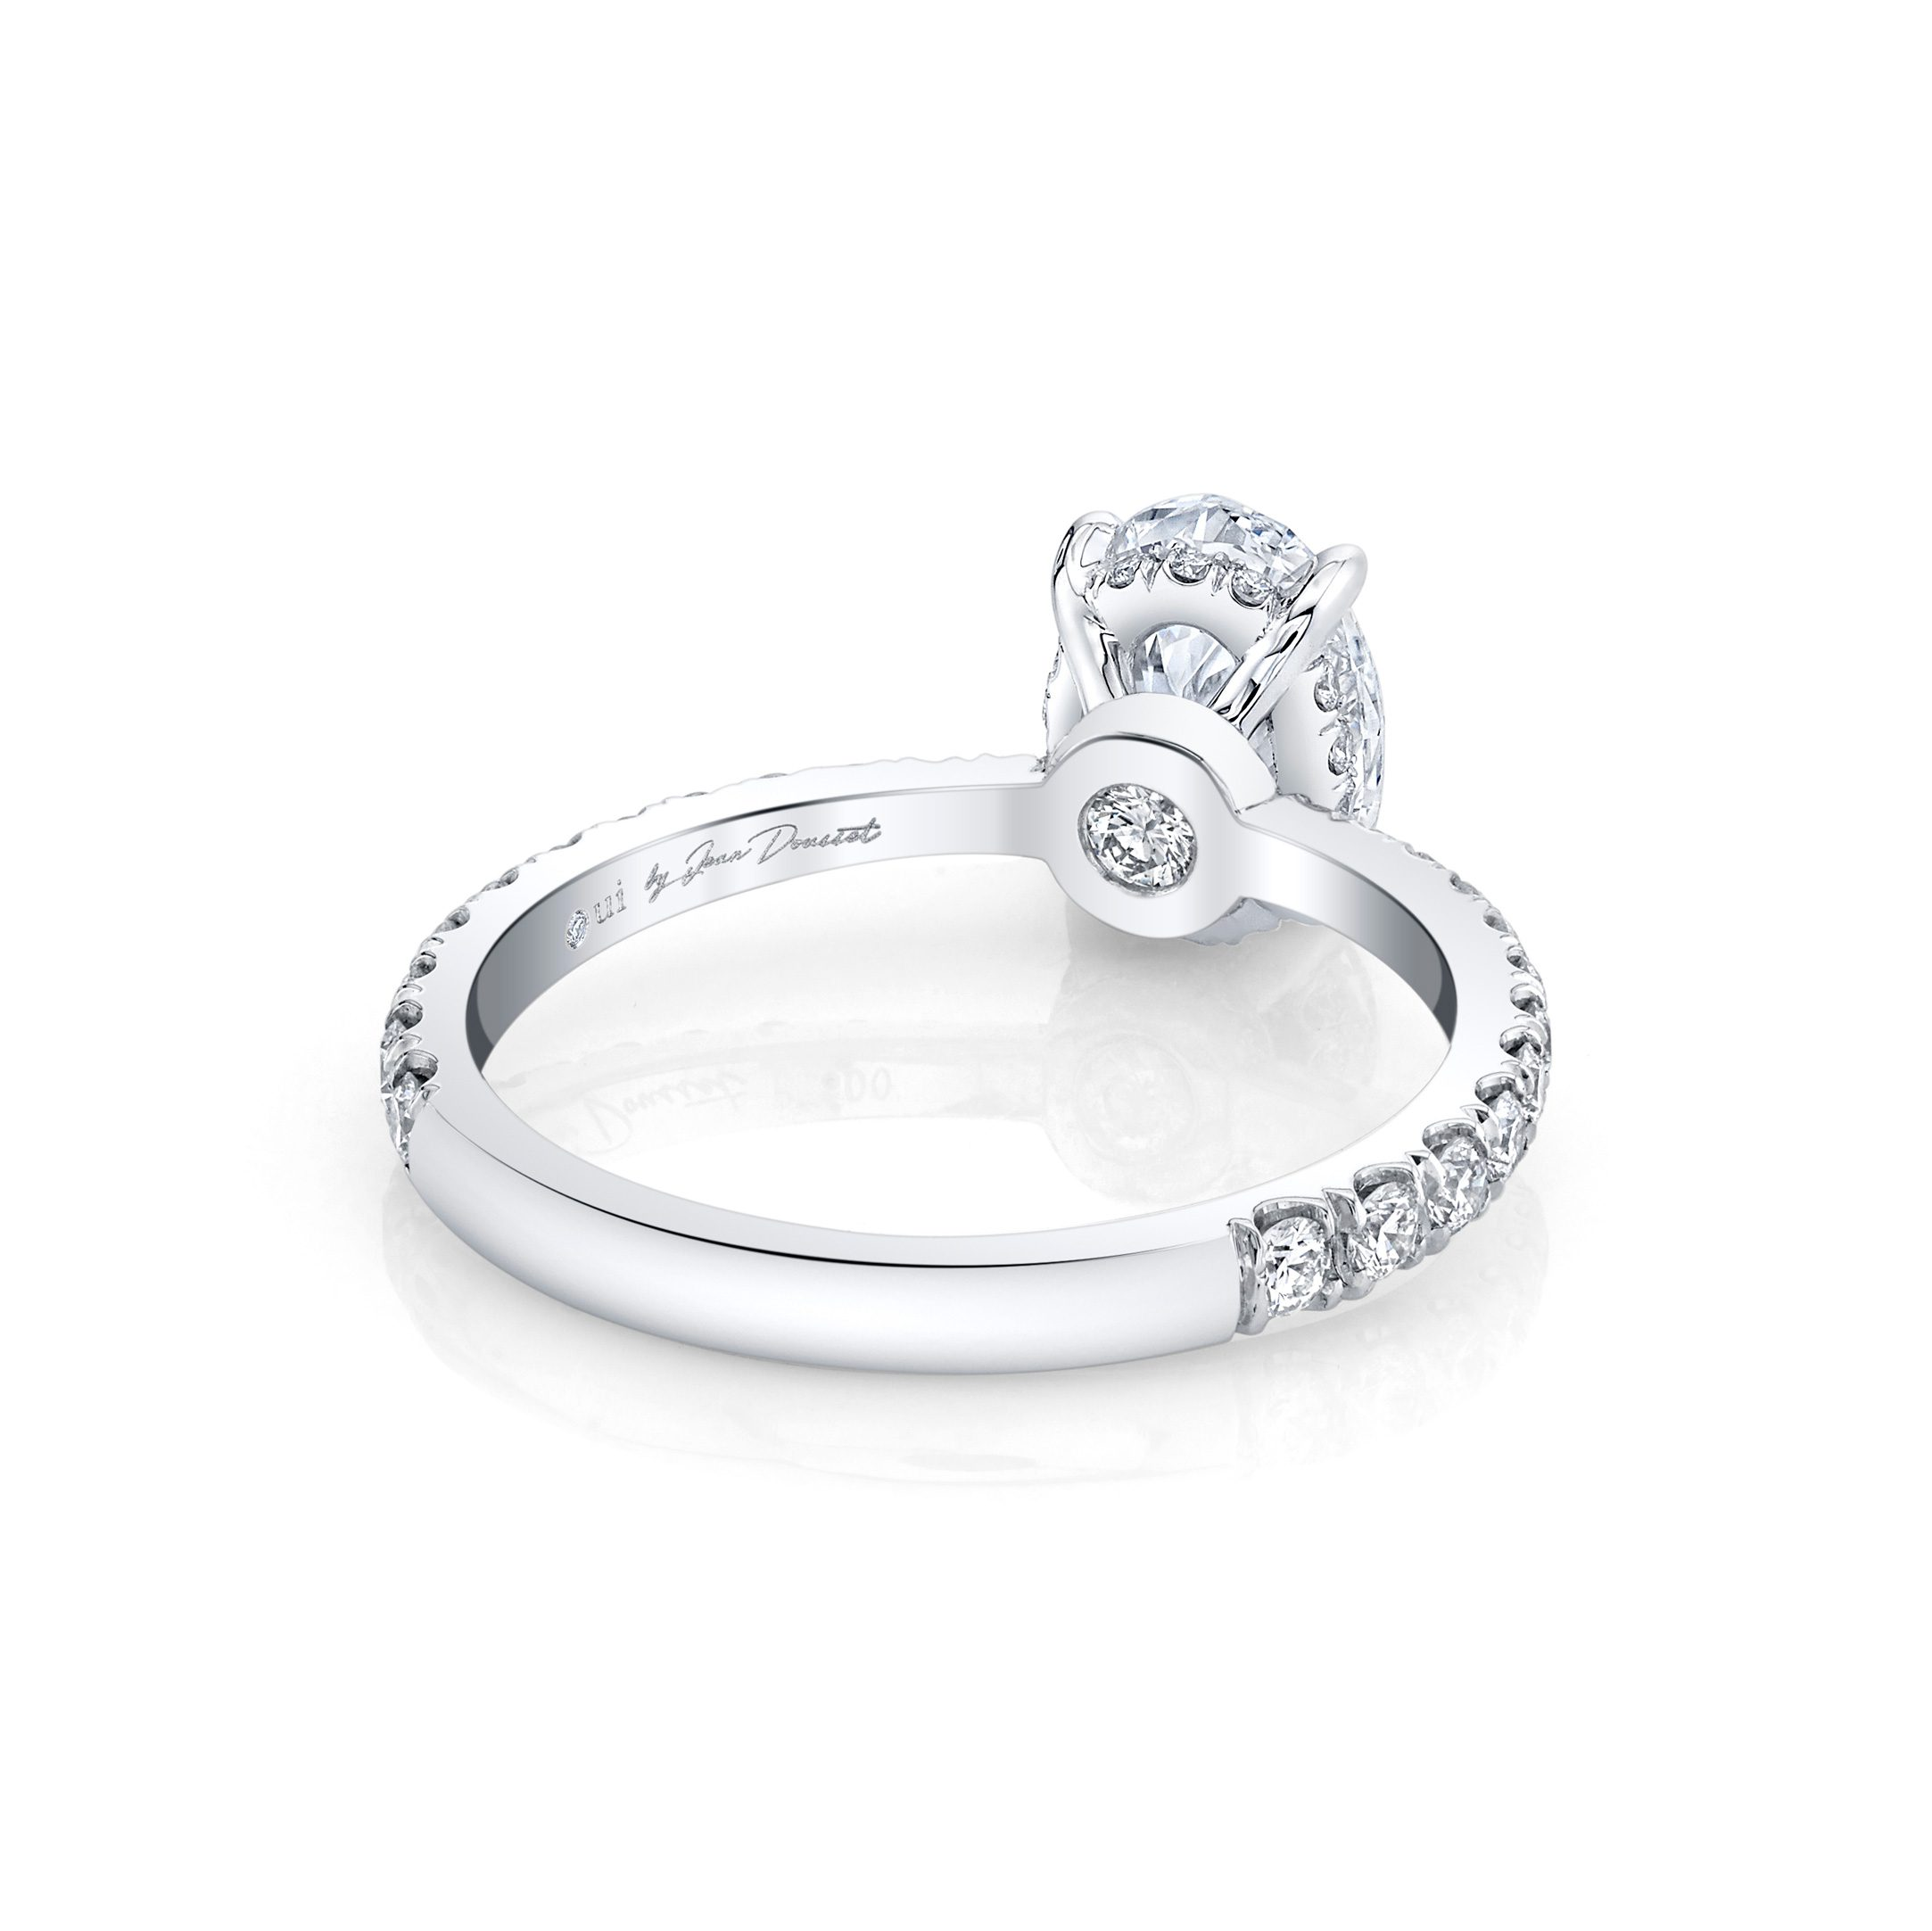 Eloise Oval Solitaire Engagement Ring with a diamond pavé band in 18k White Gold Back View by Oui by Jean Dousset